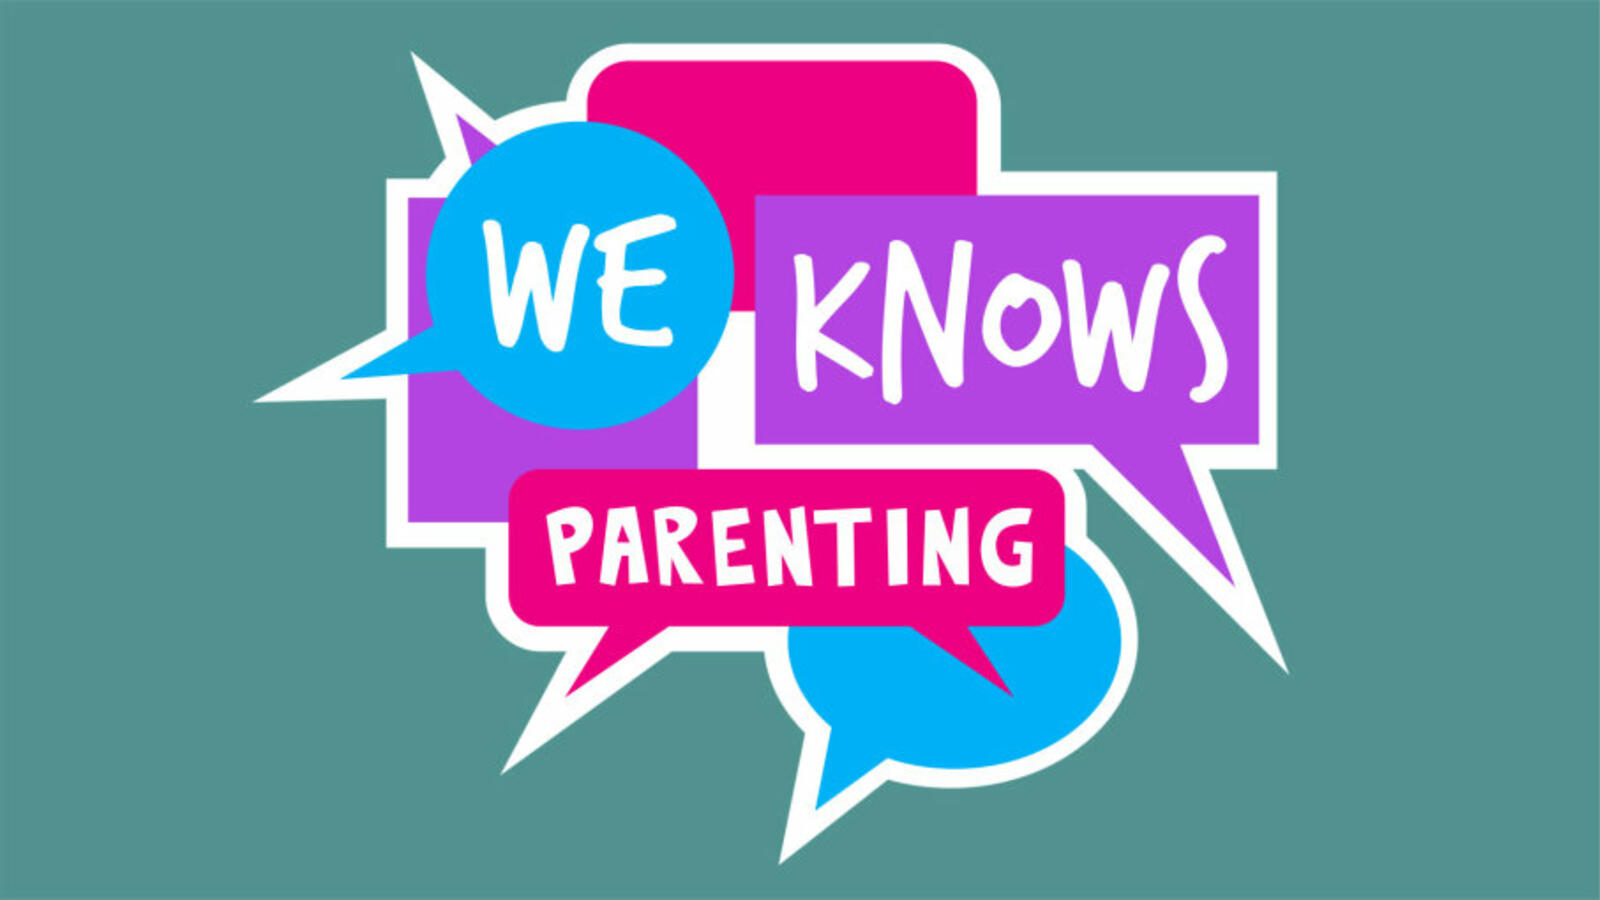 About We Knows Parenting